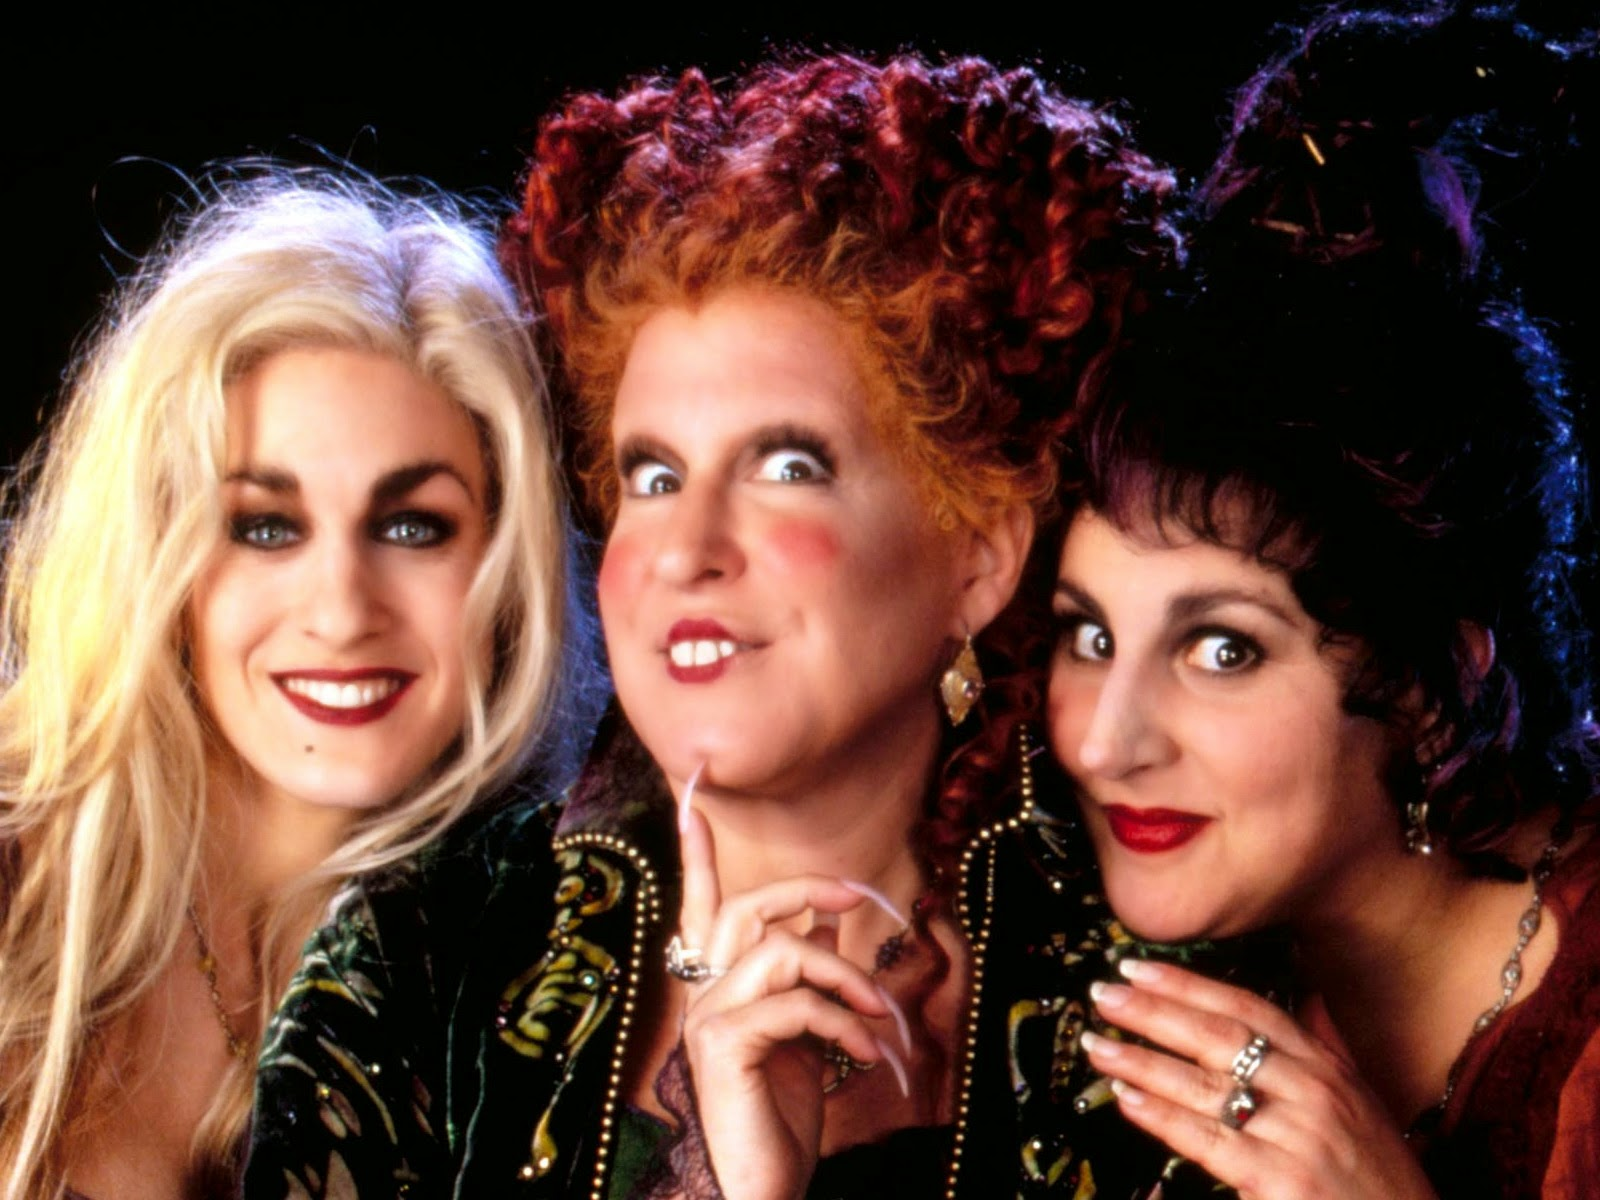 bette midler as the creepiest witch a young child could imagine this american horror comedy is fun for the whole family set in salem the spirits of the - Halloween Movies For Young Kids